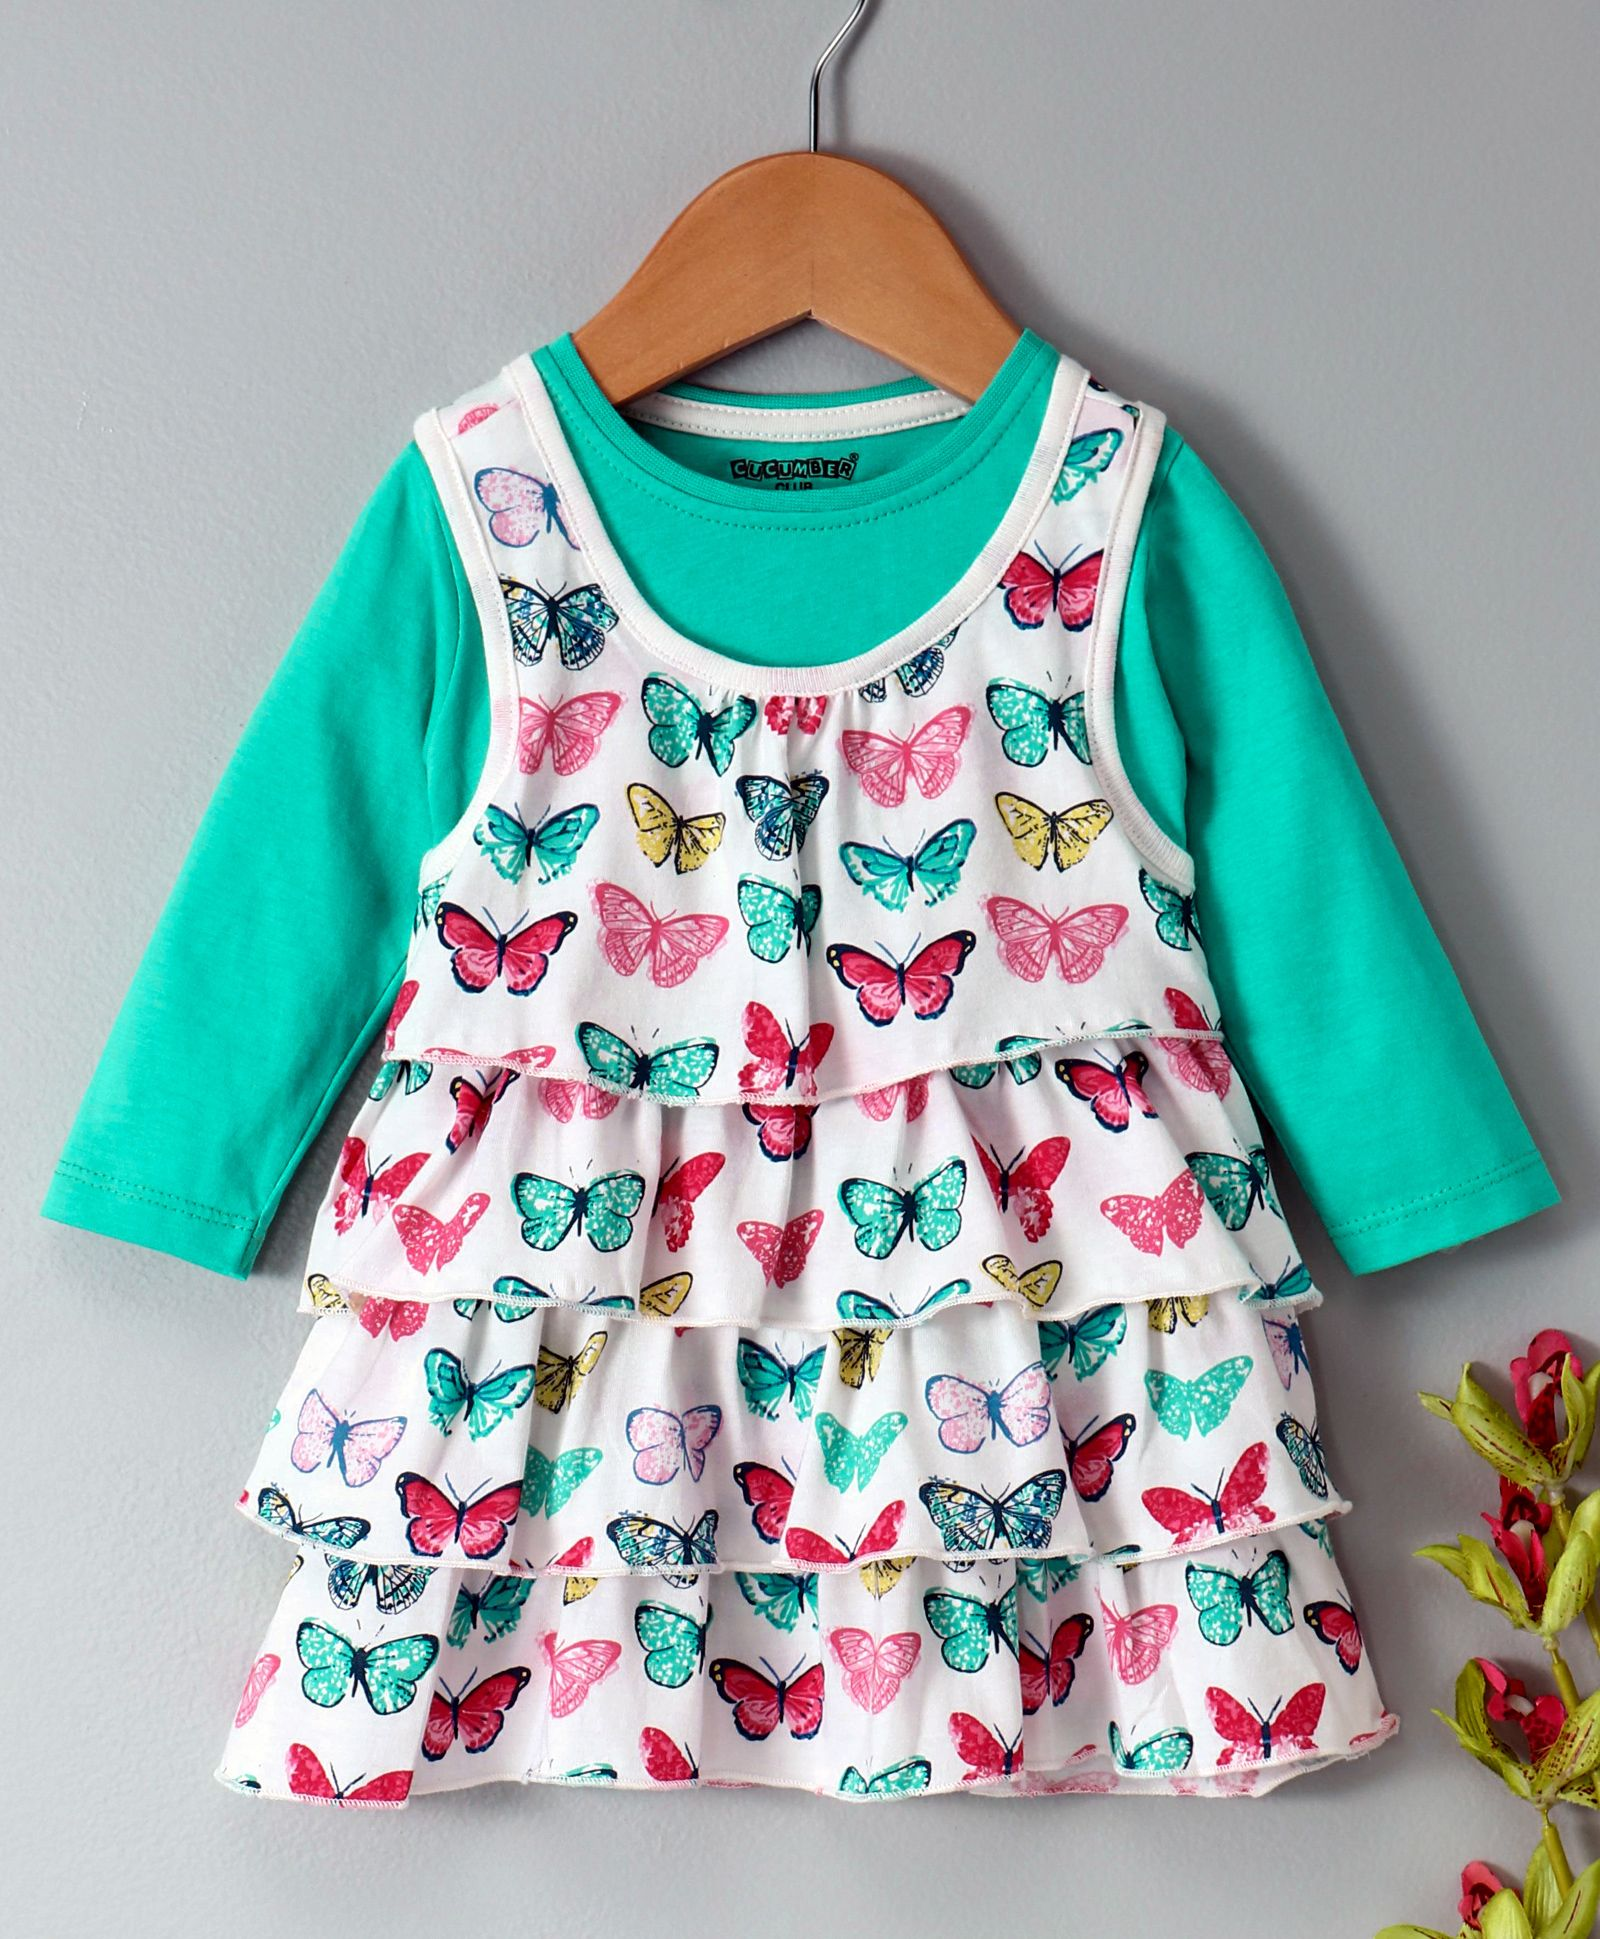 c8a671388370 Buy Cucumber Layered Frock With Full Sleeves Inner Tee Butterfly ...